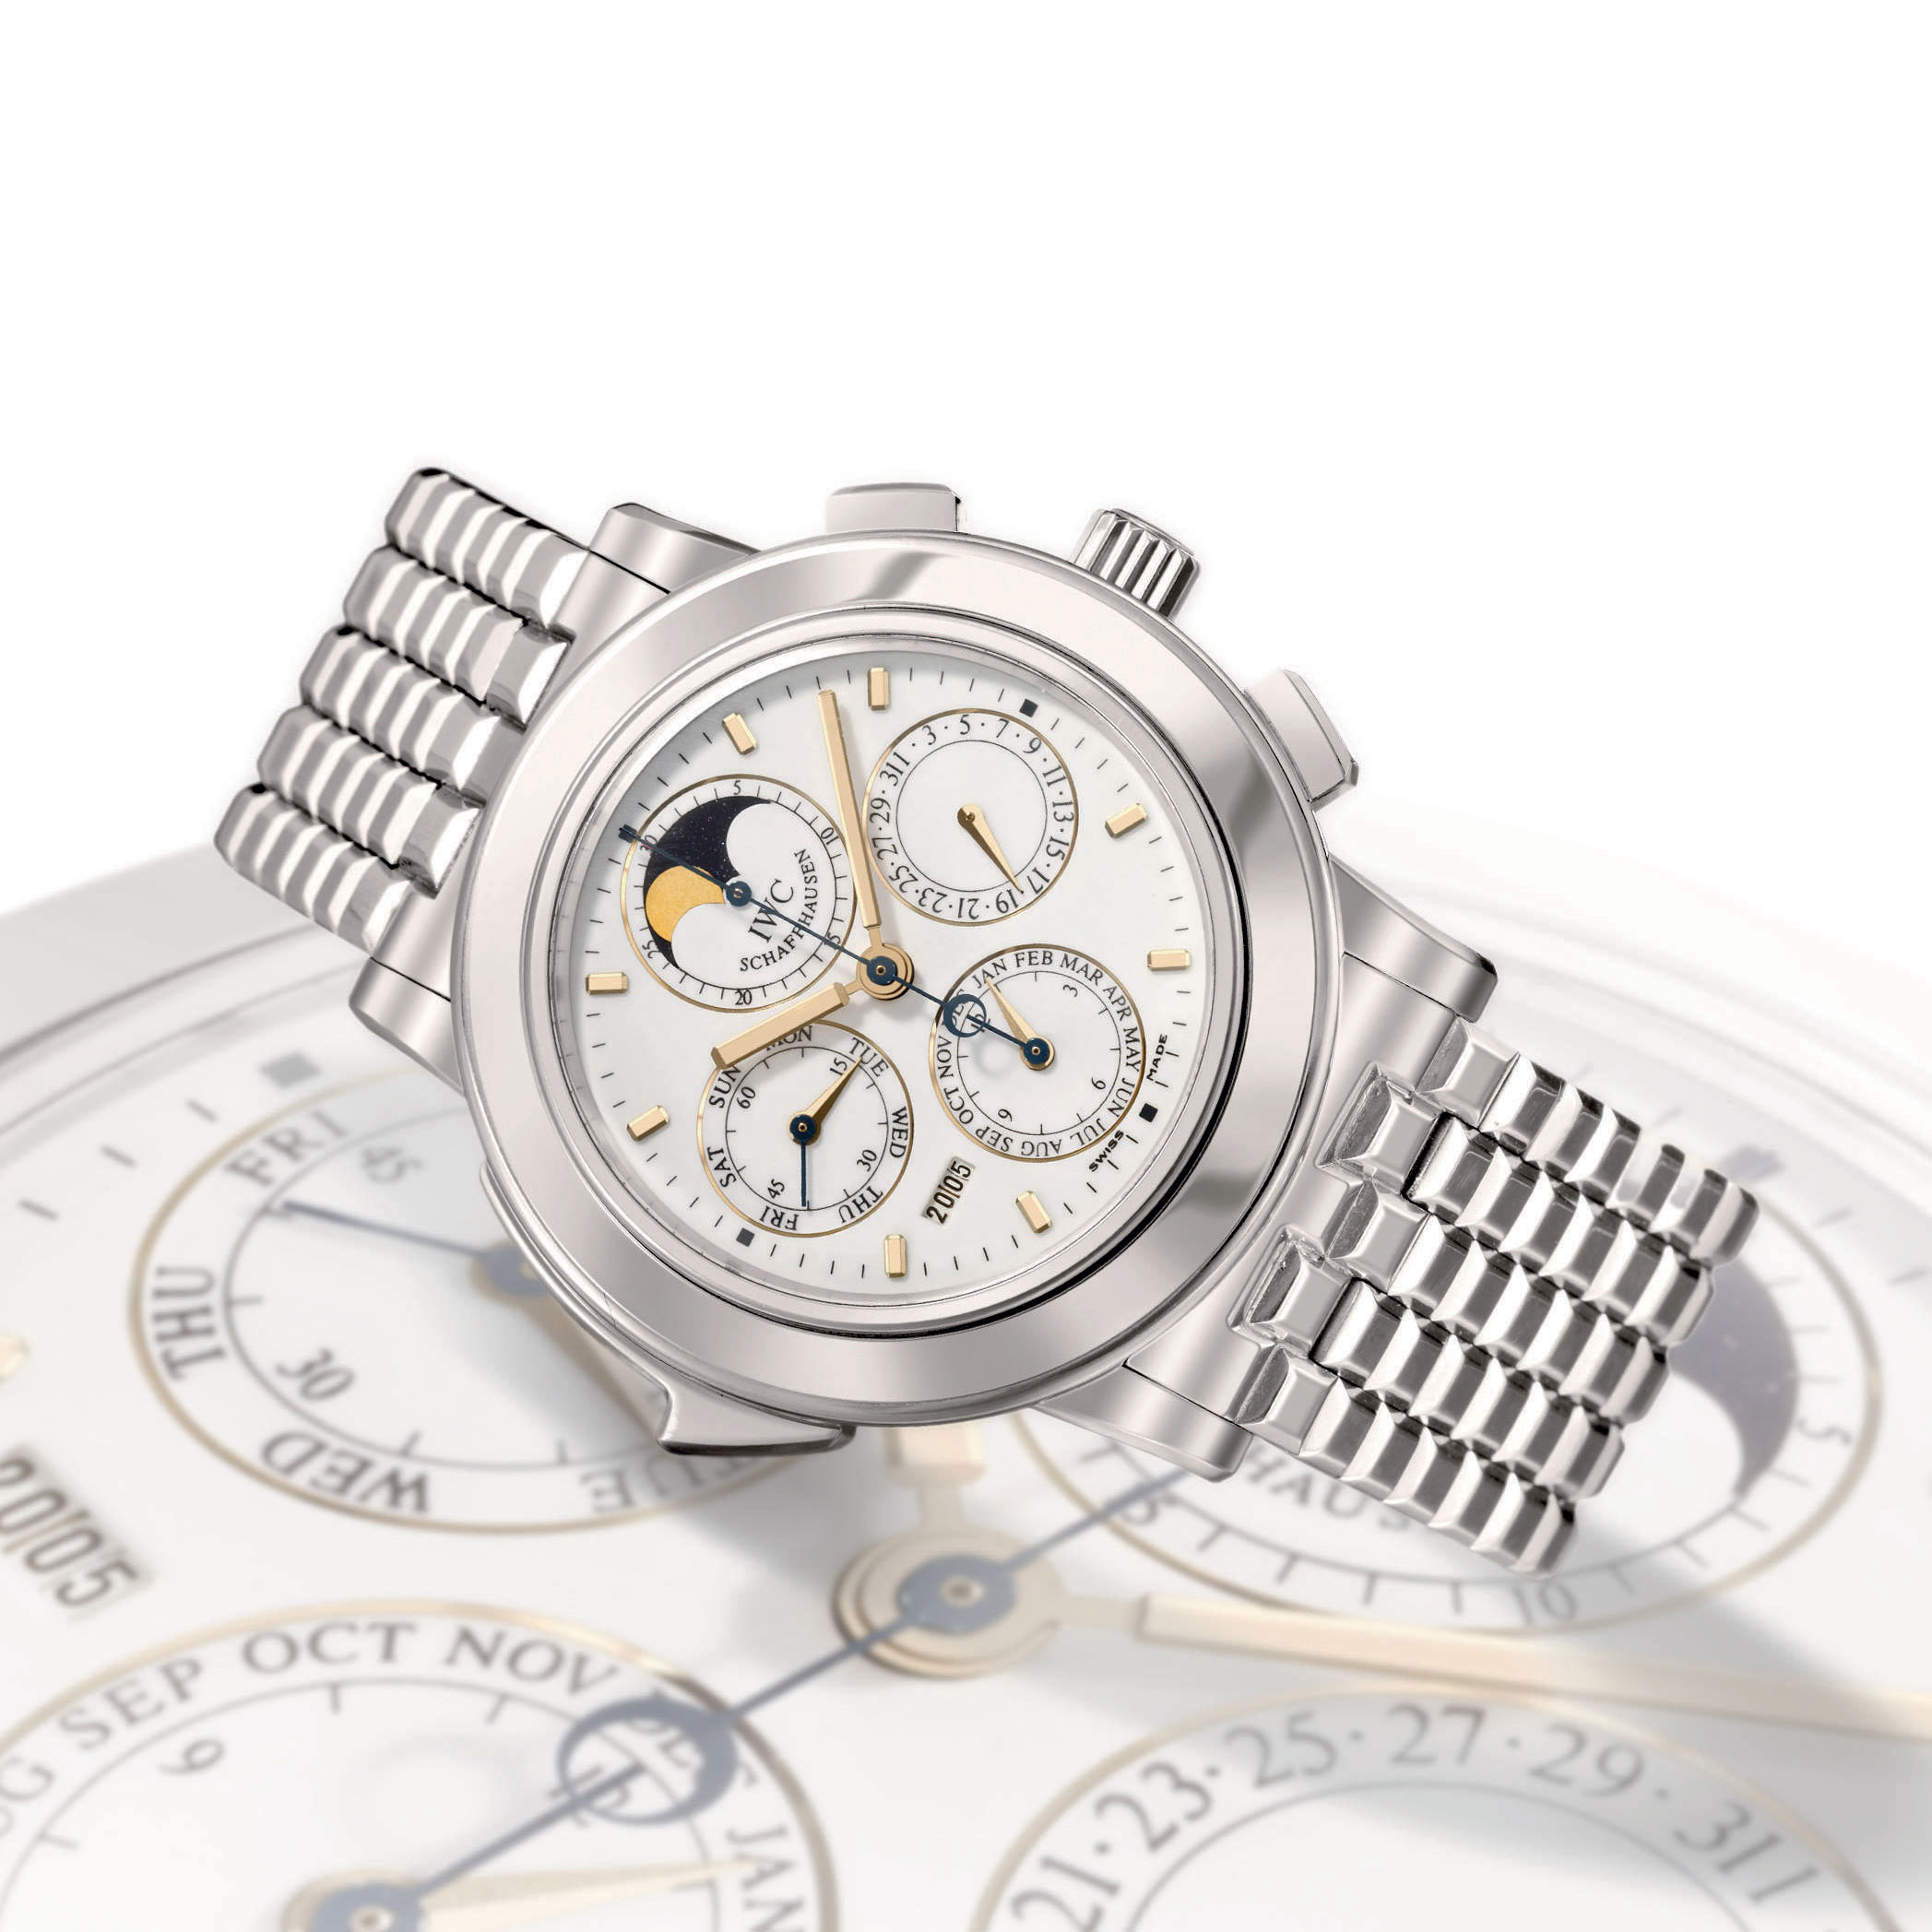 IWC, GRANDE COMPLICATION  PLATINUM AUTOMATIC PERPETUAL CALENDAR MINUTE REPEATING CHRONOGRAPH WRISTWATCH WITH MOON PHASE DISPLAY AND BRACELET, LIMITED EDITION OF 50